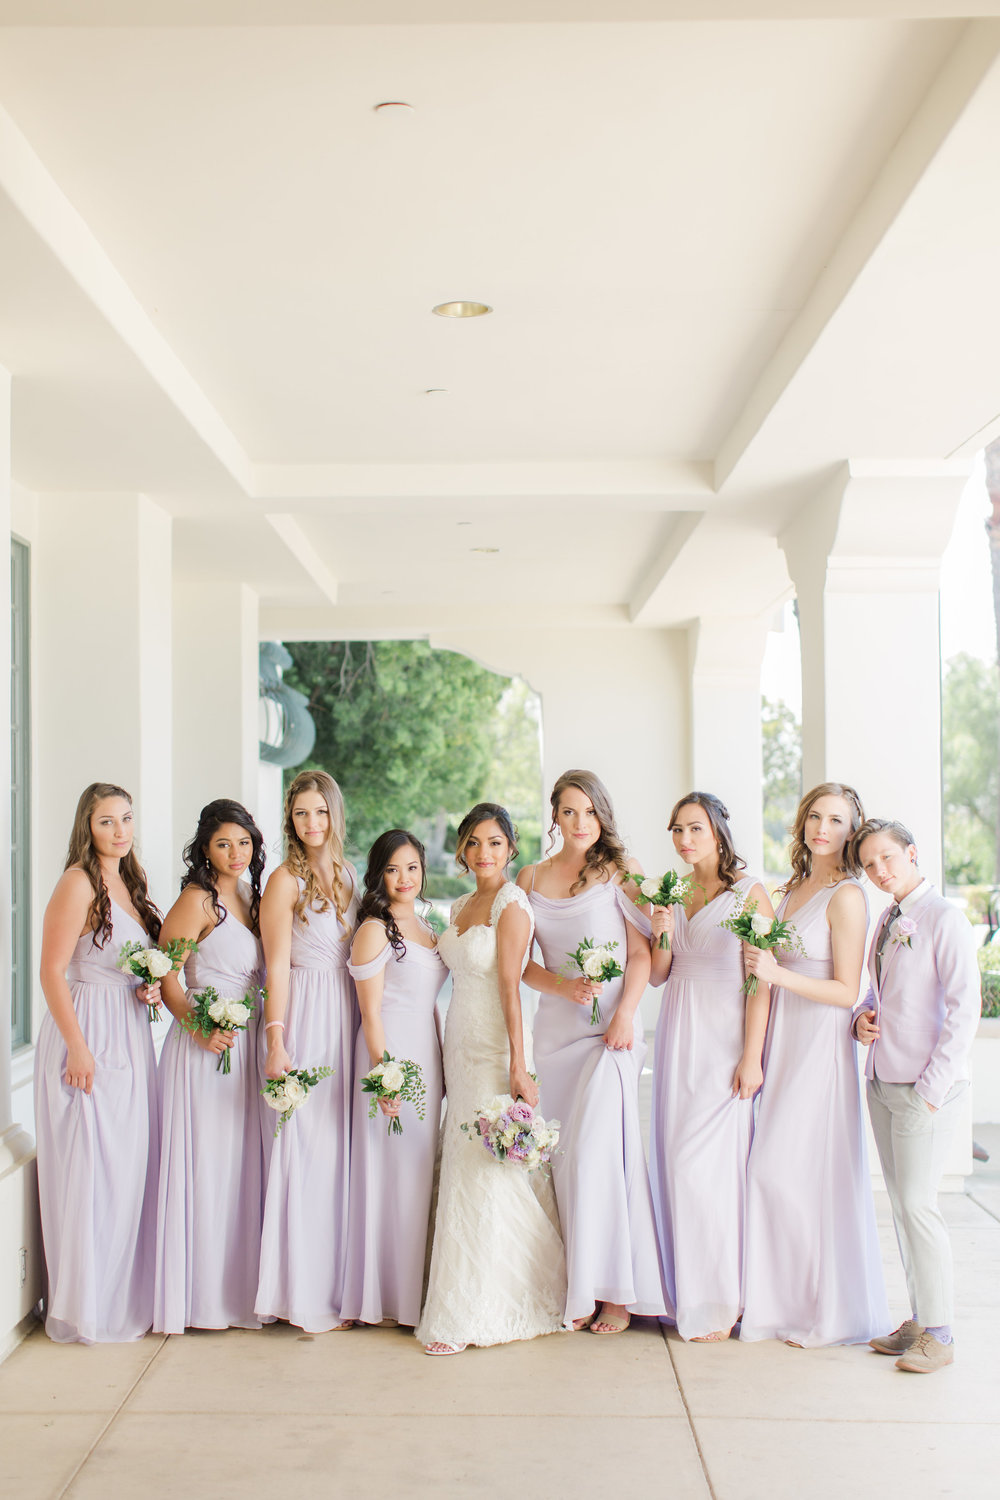 AngelicaMariePhotography_AlvarezWedding_SpanishHillsCountryClub_VenturaCountyWeddingPhotographer_133.JPG